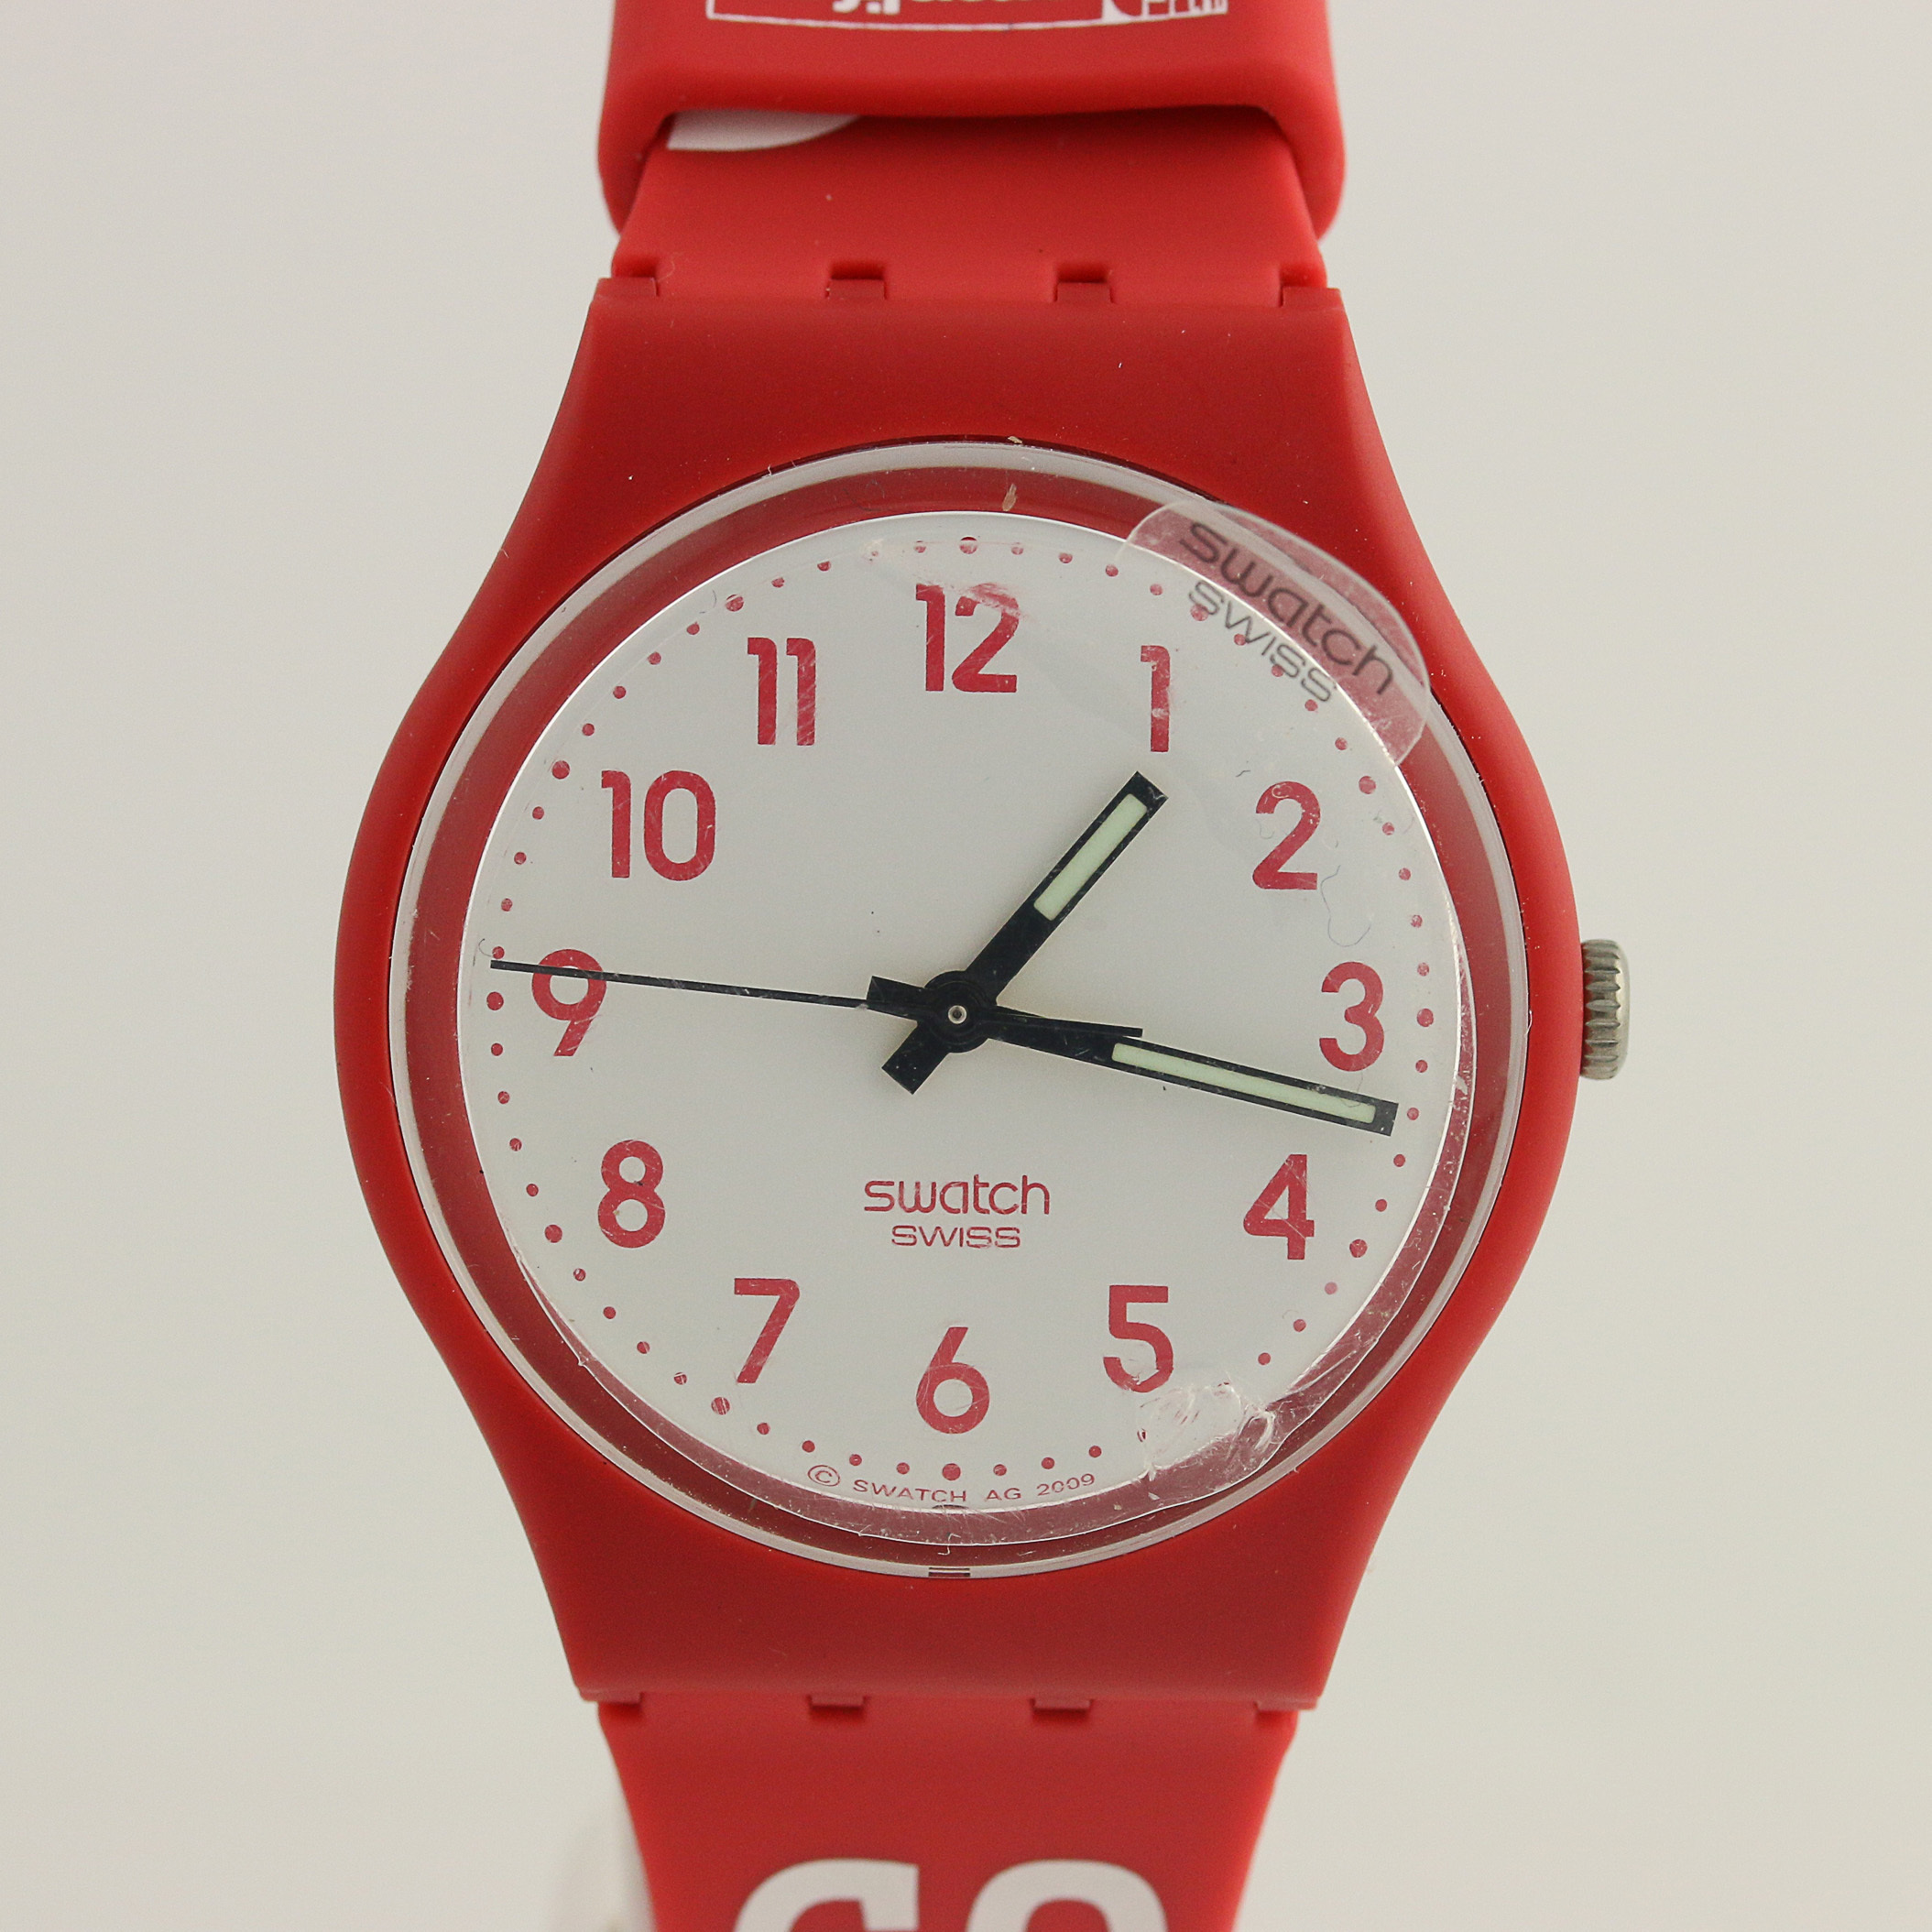 swatch revolutionises watch manufacture Online shopping for swatch from a great selection at watches store.